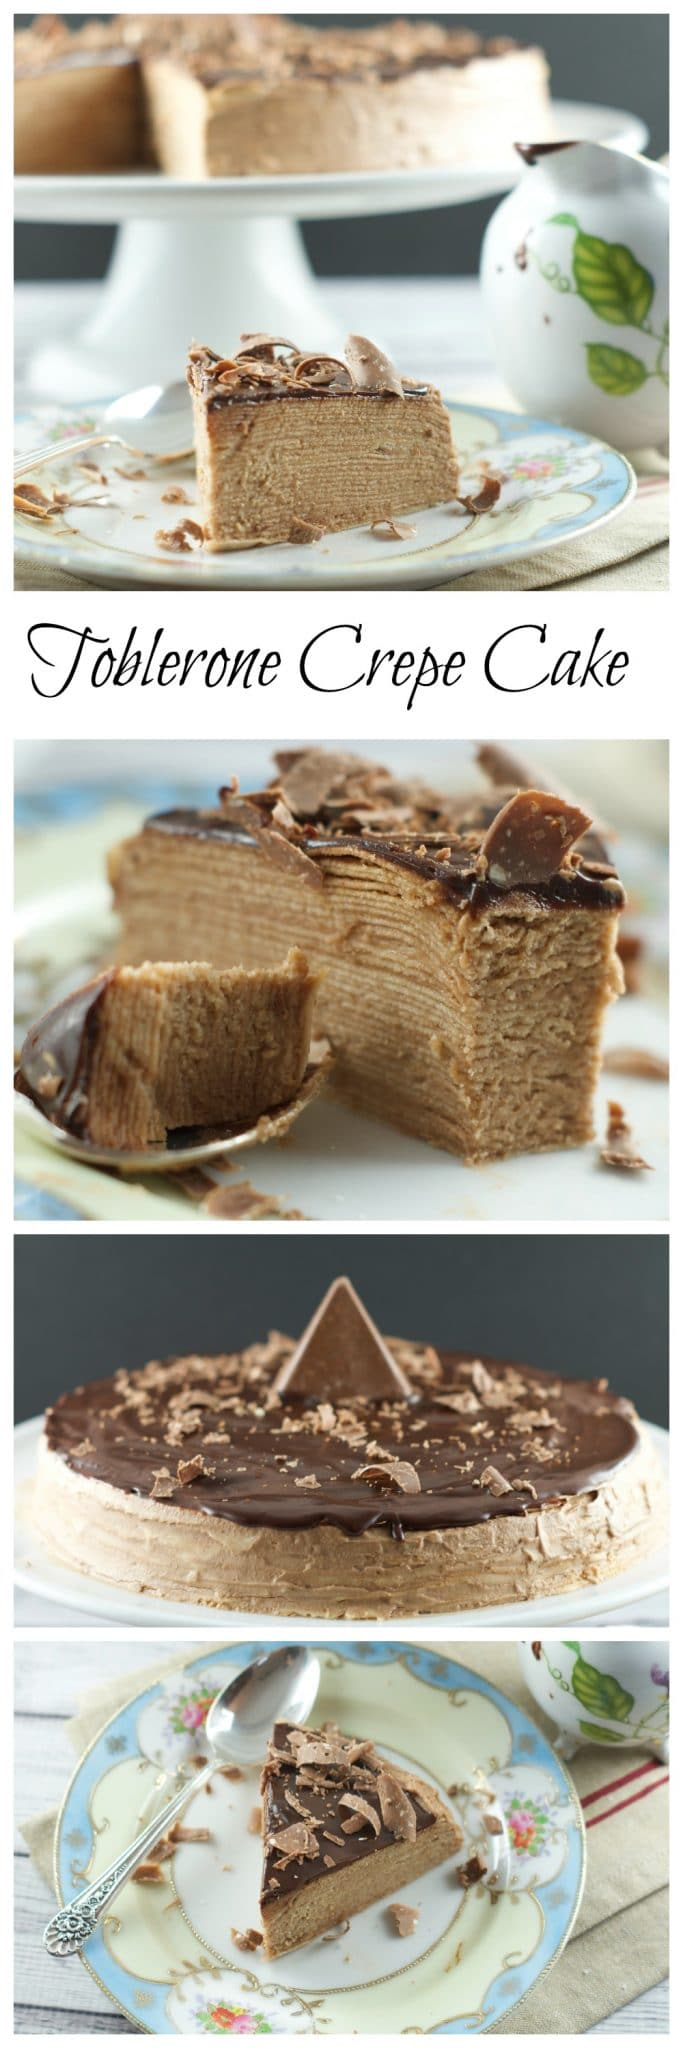 Toblerone Chocolate Crepe Cake – 30 crepes layered with Toblerone ganache and topped with a dark chocolate glaze. A simple, delicious and beautiful cake for entertaining